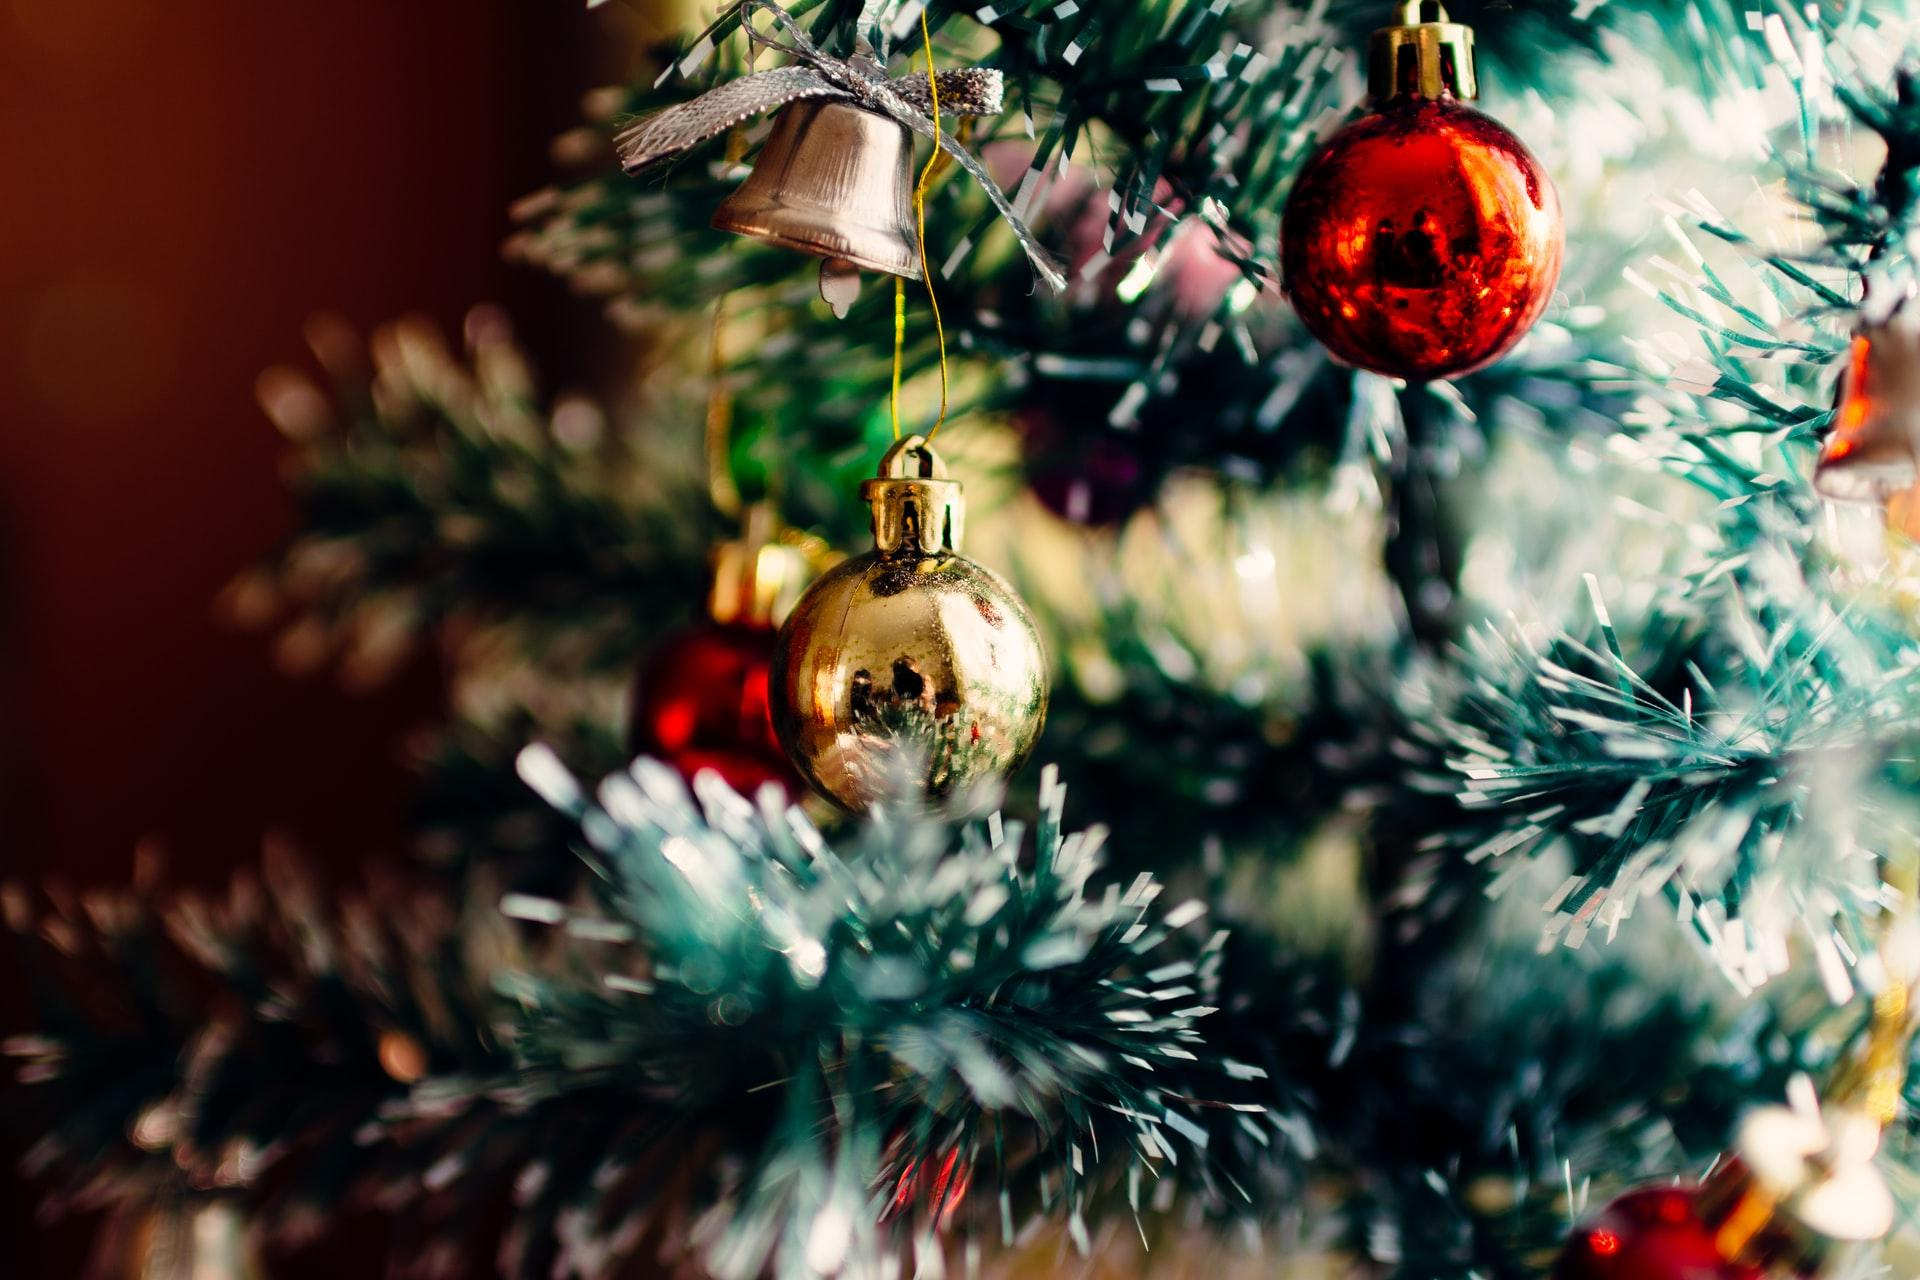 The Best Christmas Zoom Backgrounds To Get You In The Holiday Spirit